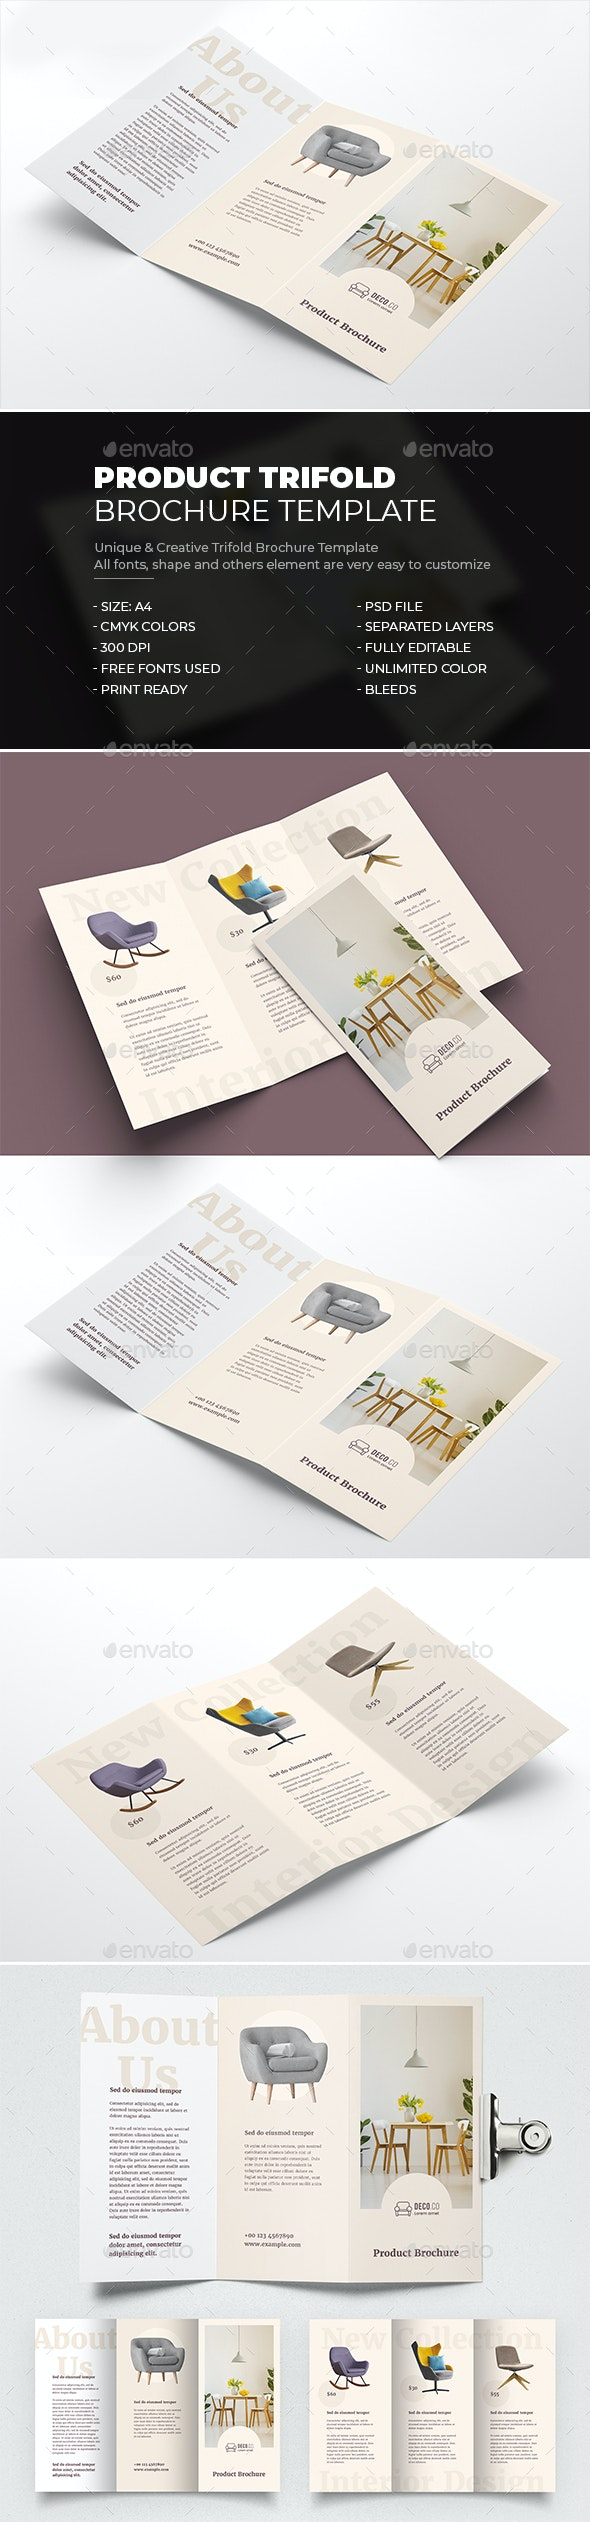 Product Trifold Brochure - Brochures Print Templates